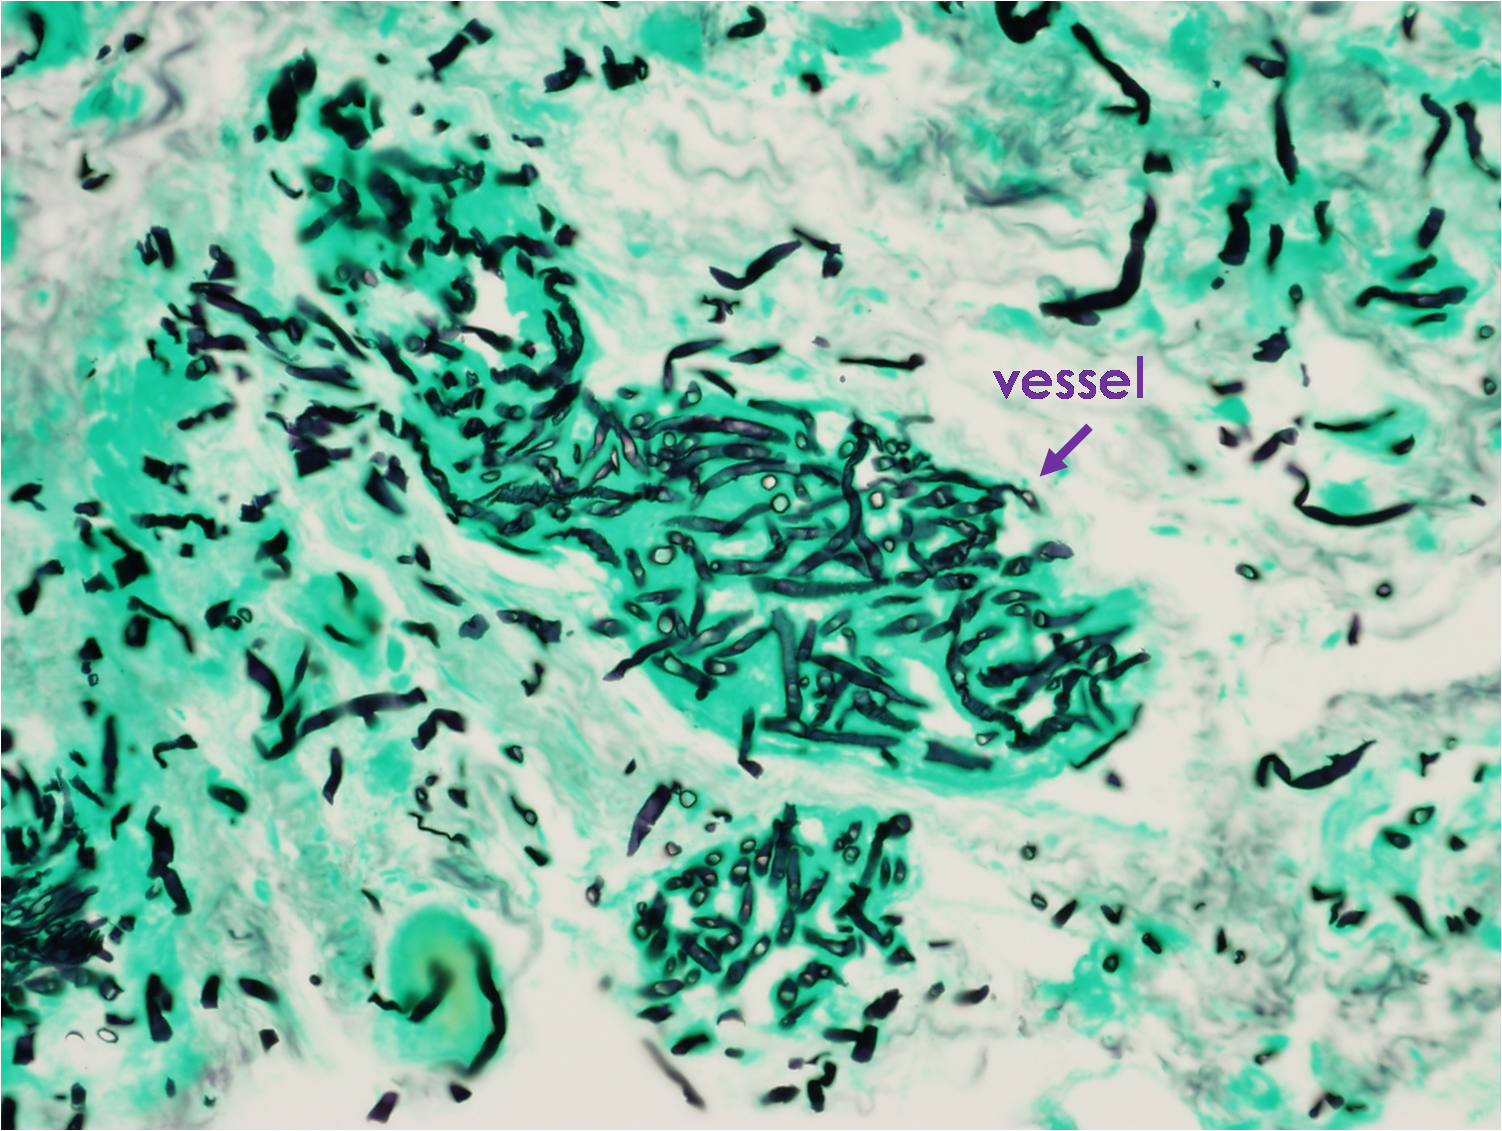 Figure 10. GMS stain demonstrating angioinvasion